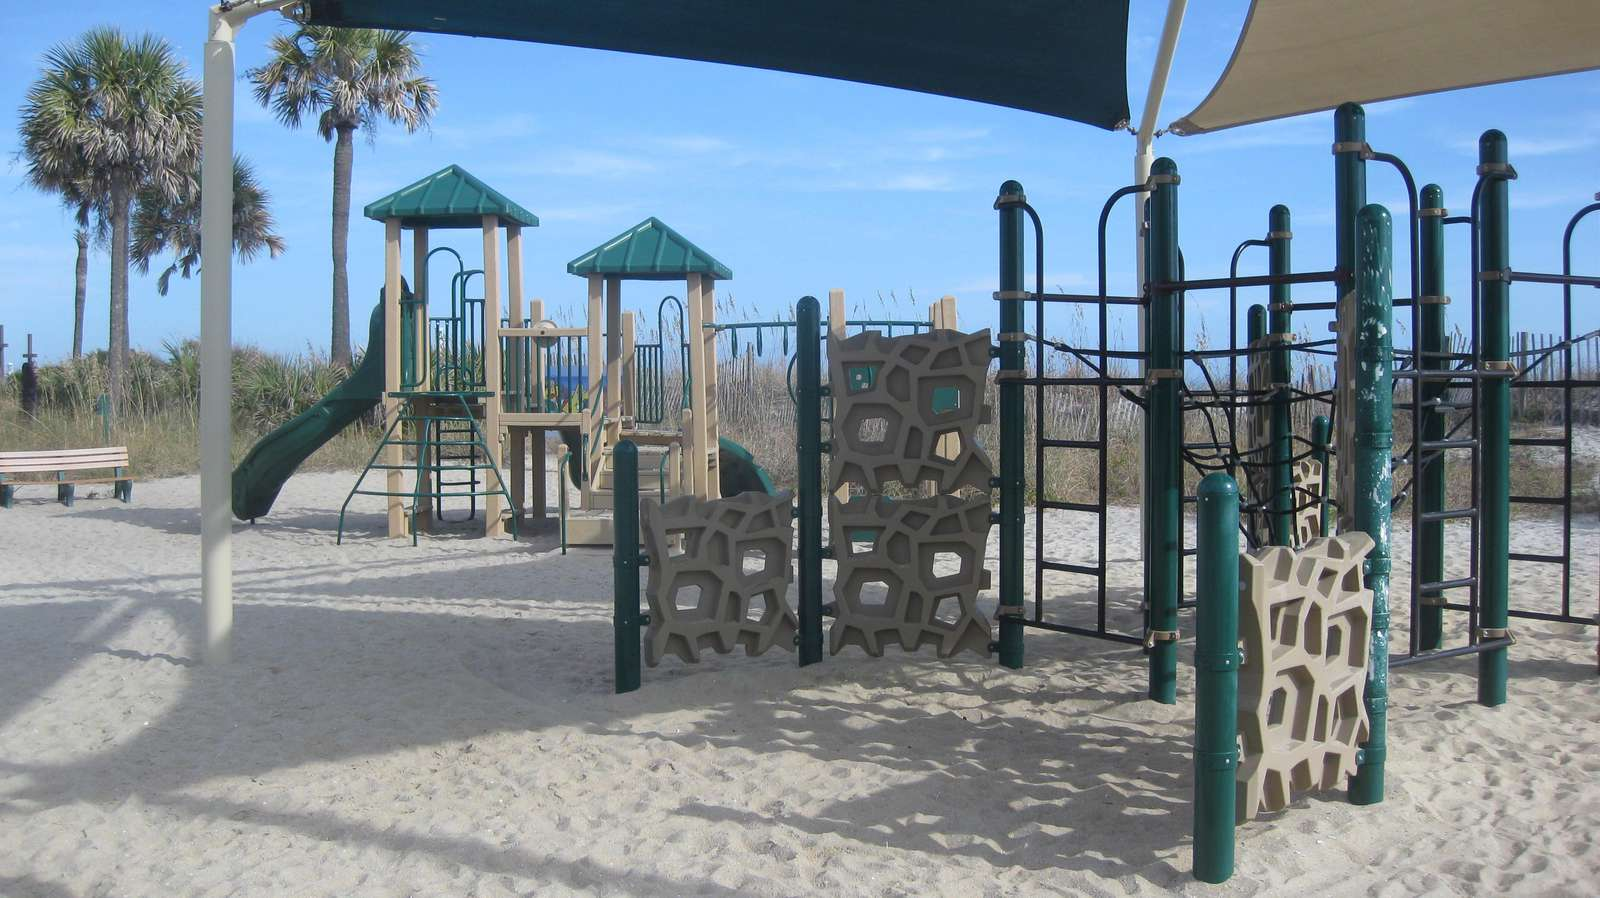 Second Playground